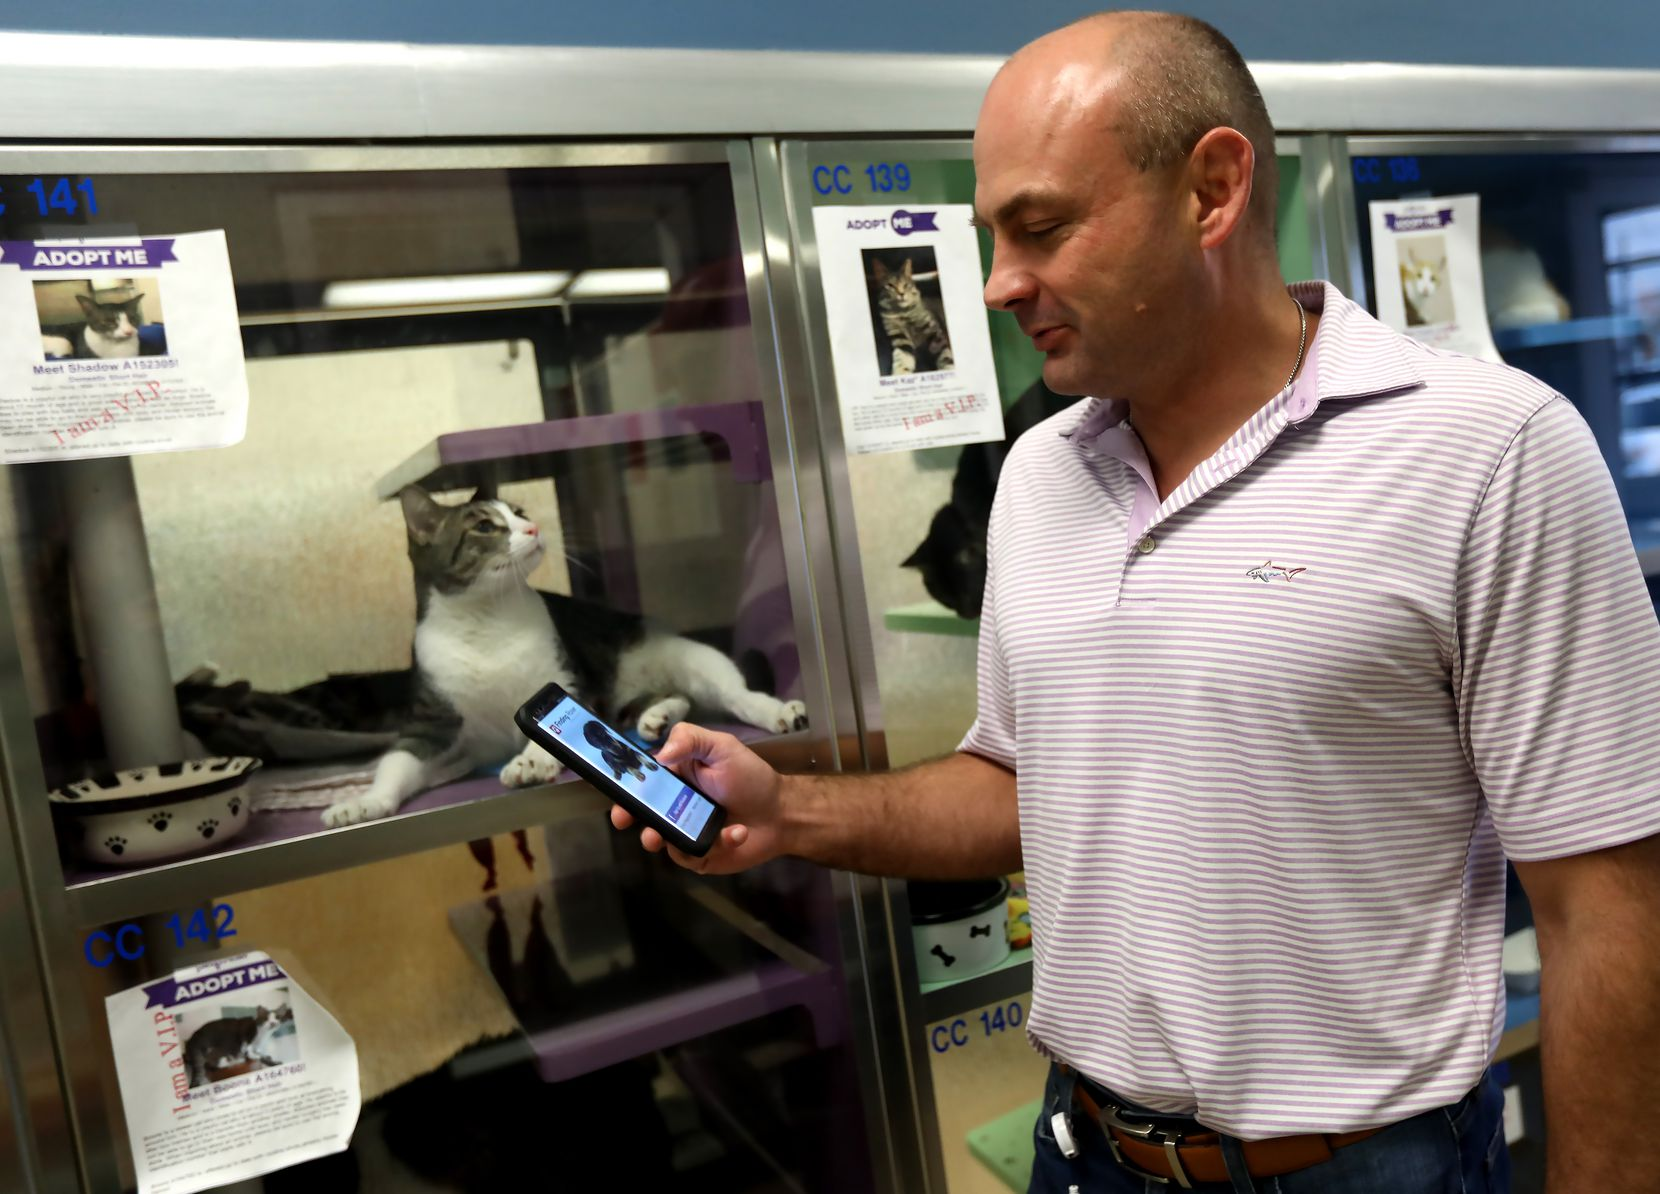 The app, demonstrated by Plano Animal Services director Jamey Cantrell, added cats to its service in 2017.